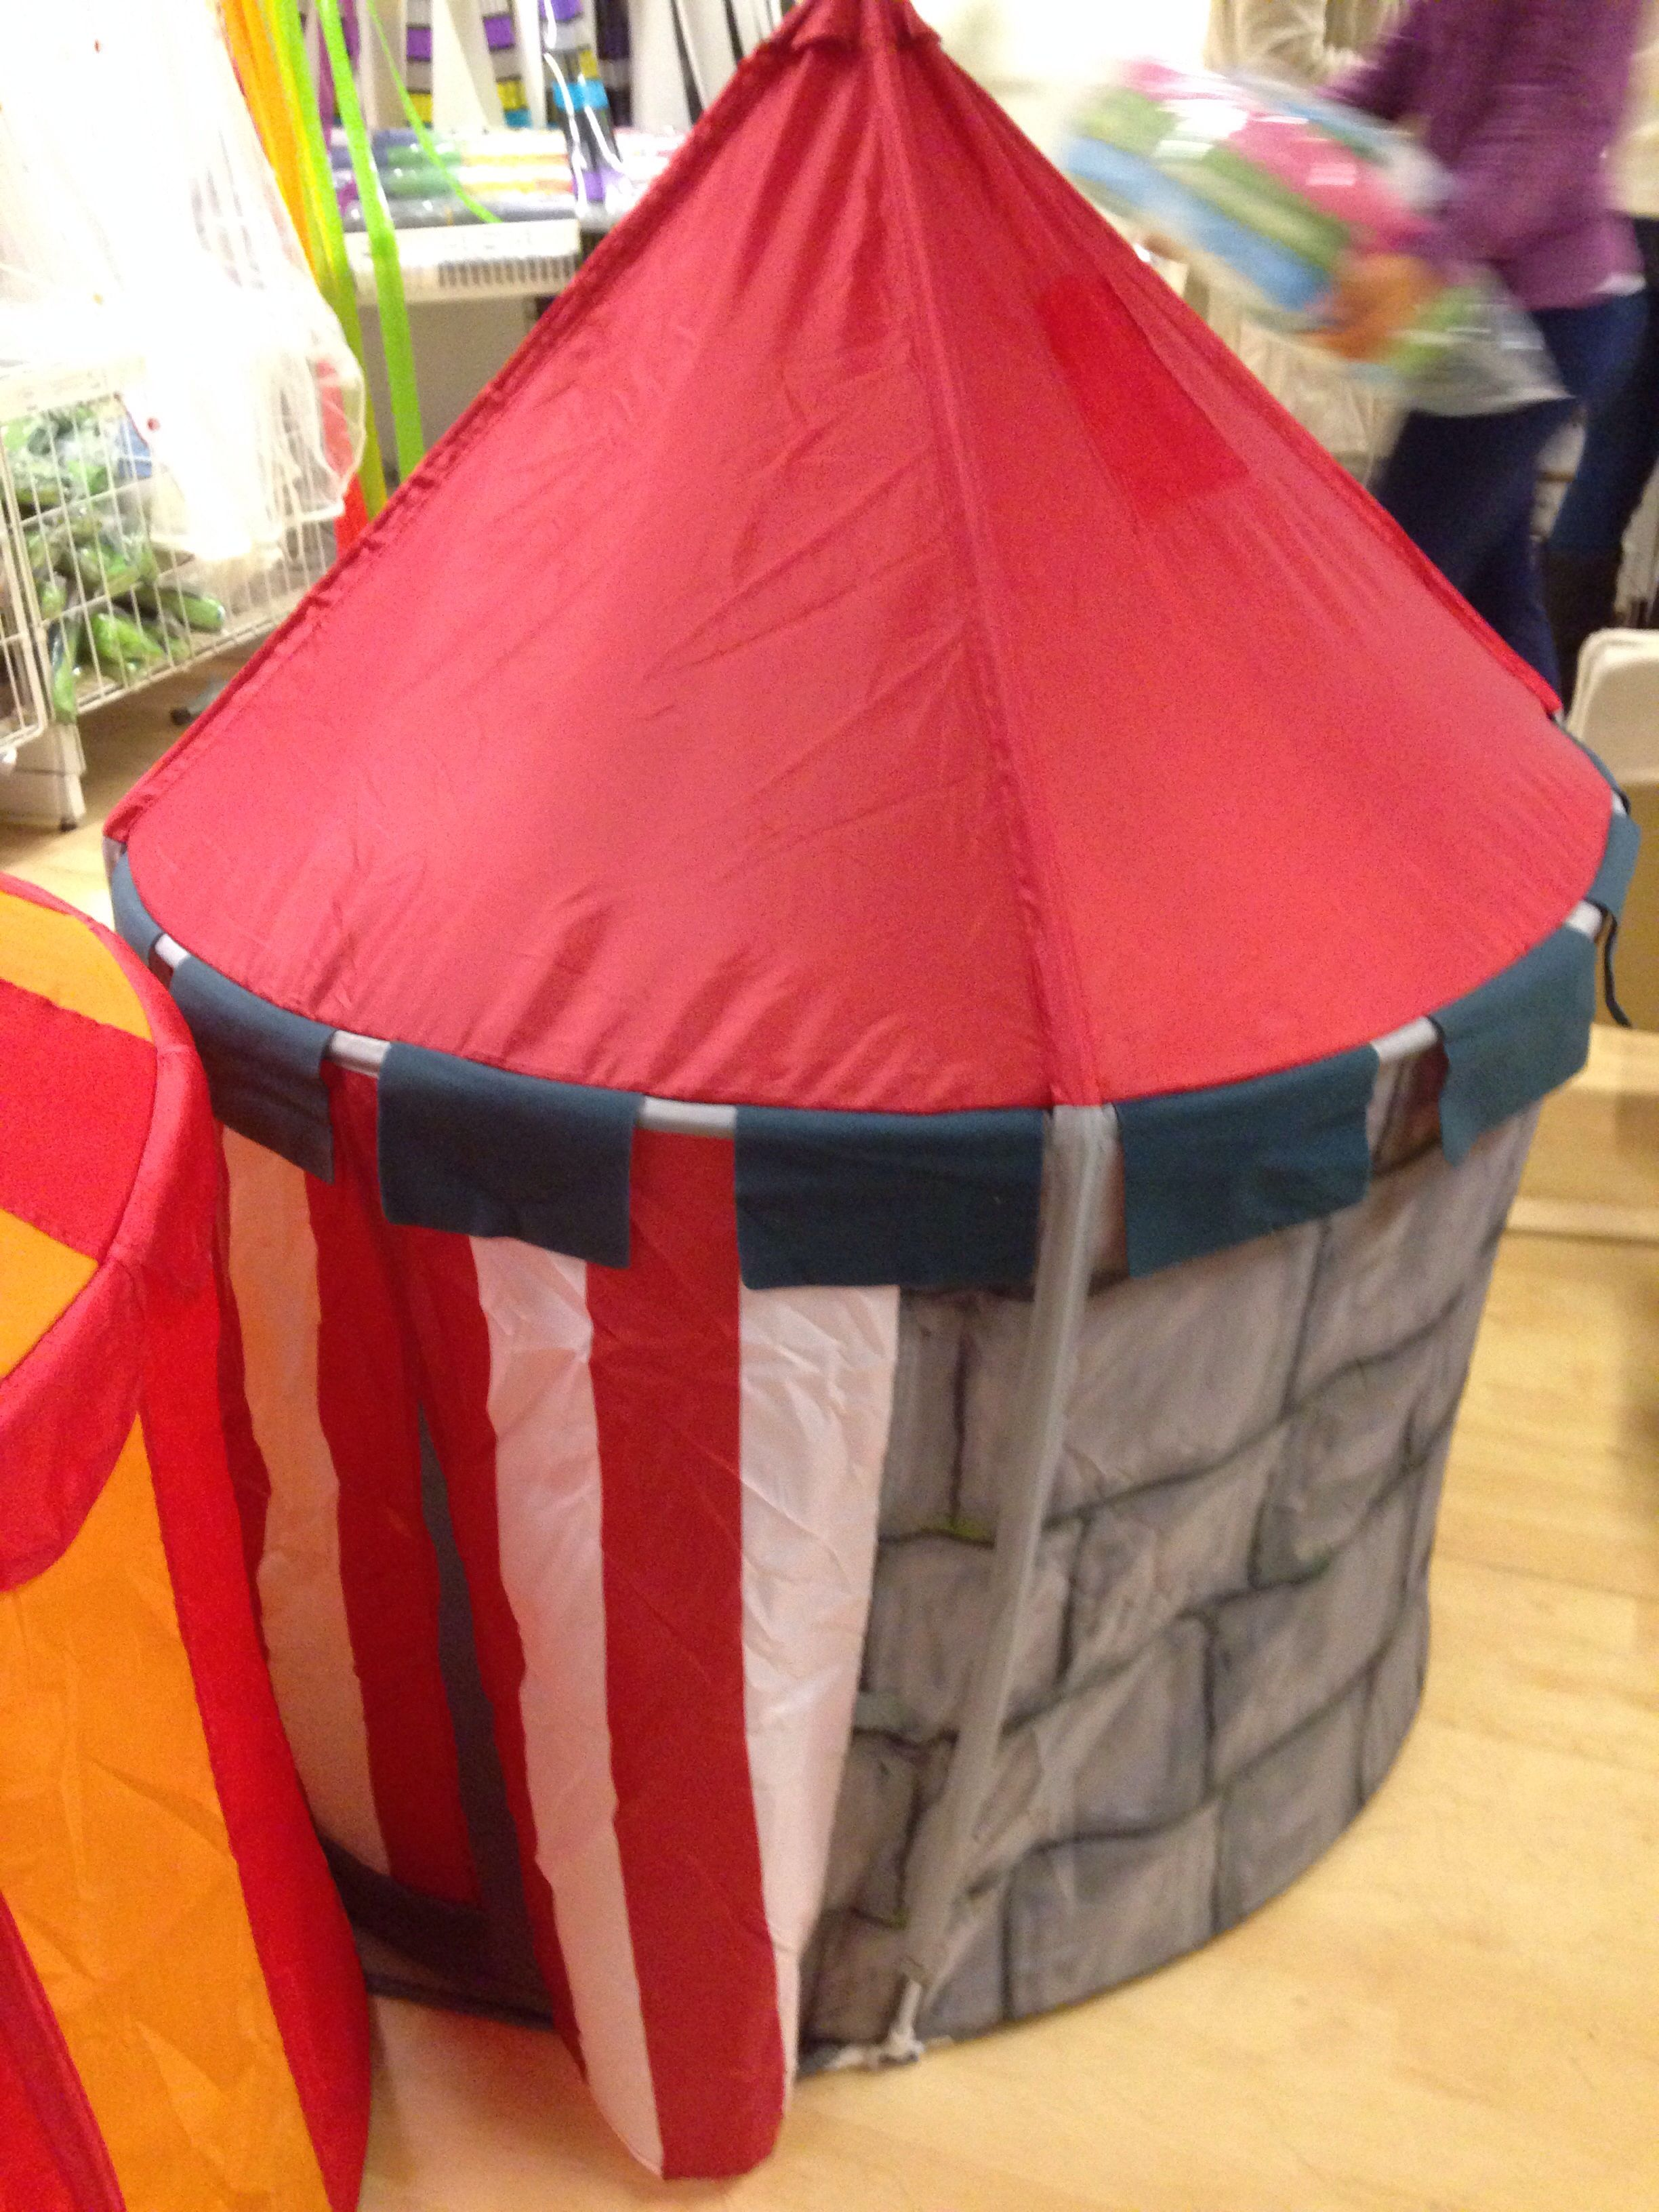 Ikea castle tent $20 & Ikea castle tent $20 | Princess party | Pinterest | Tents